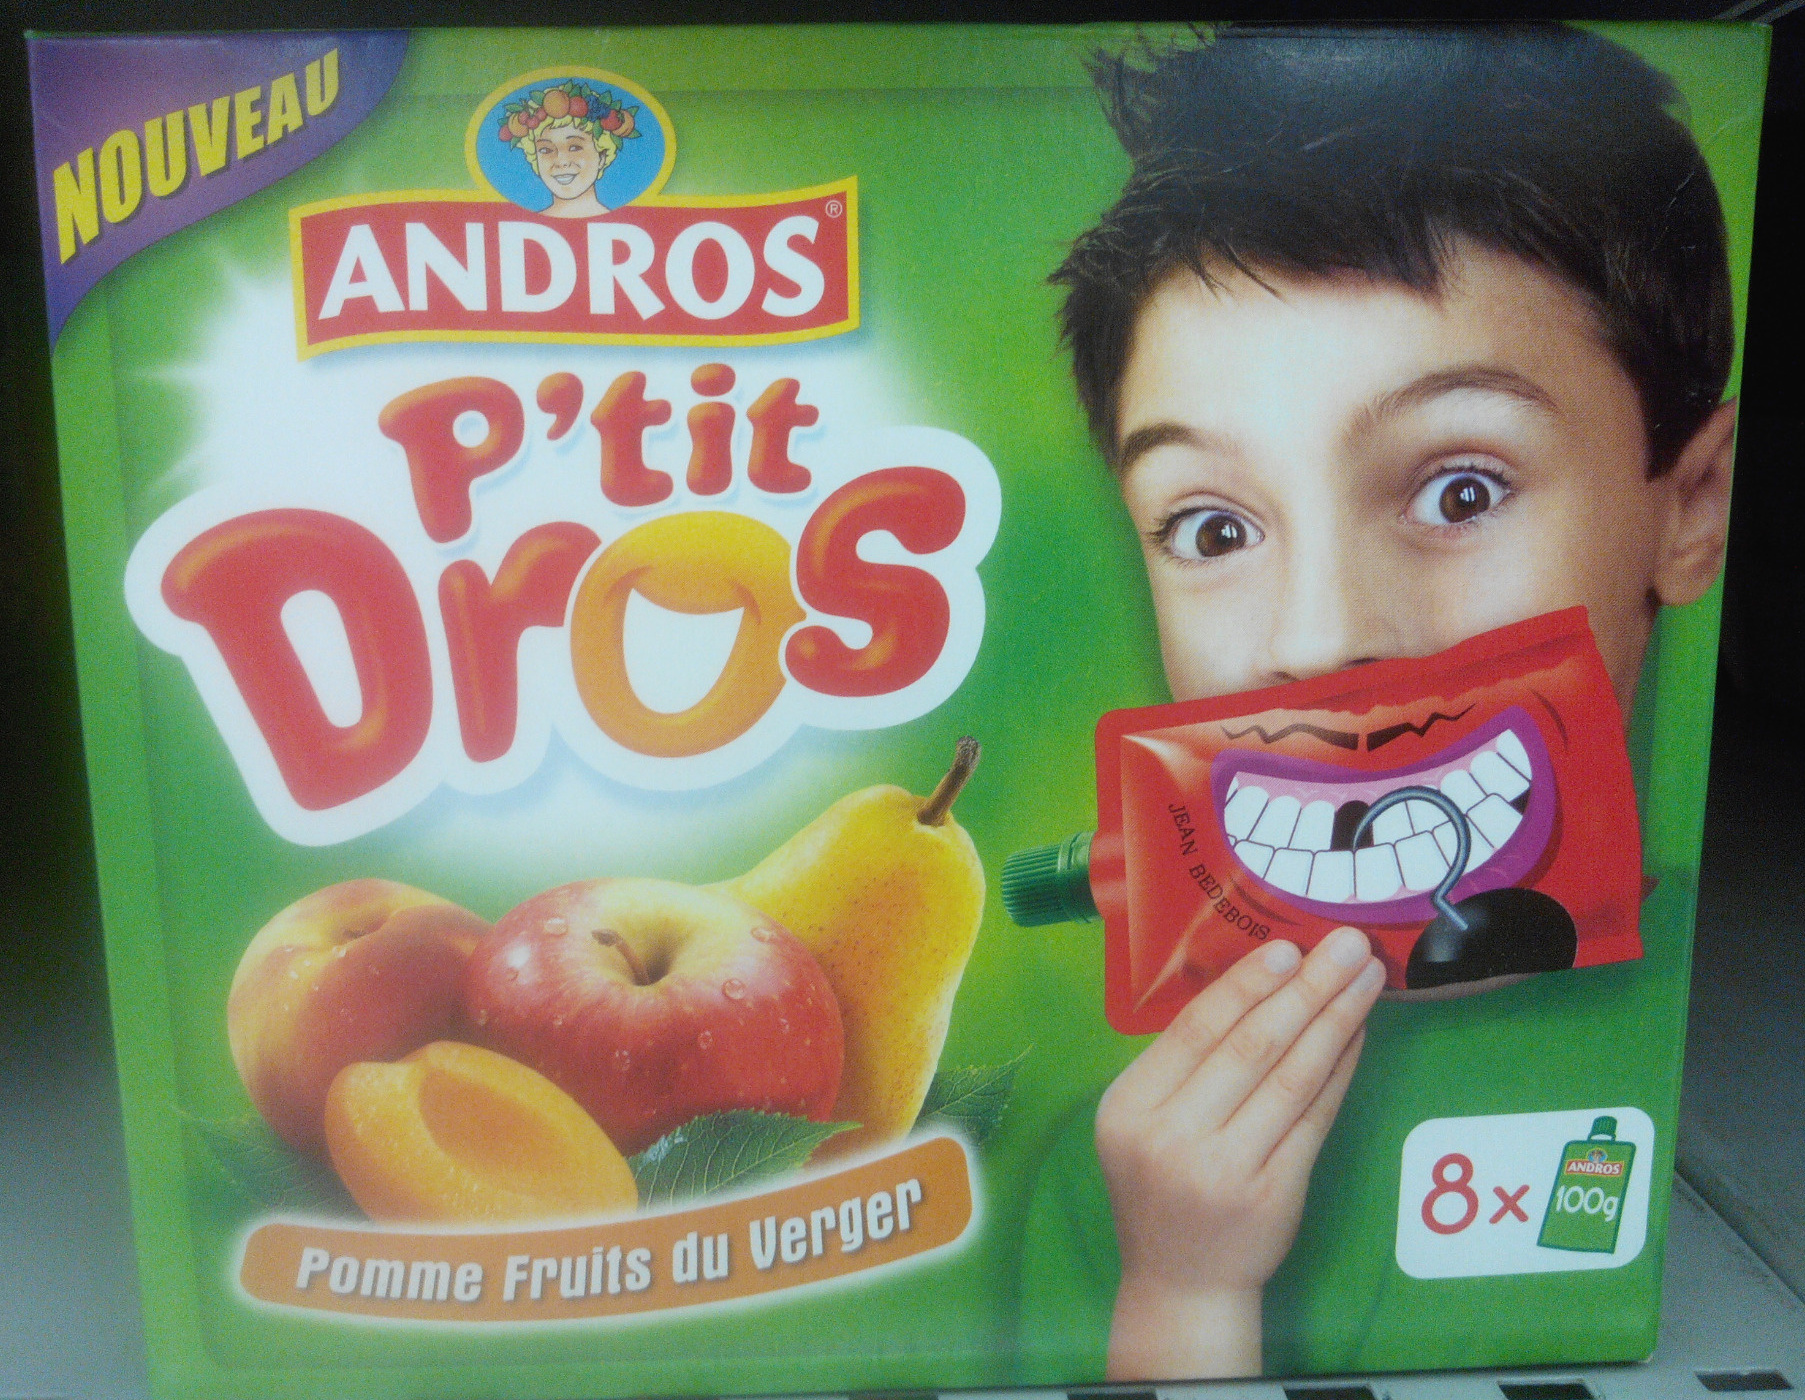 P'tit Dros Fruits du verger - Product